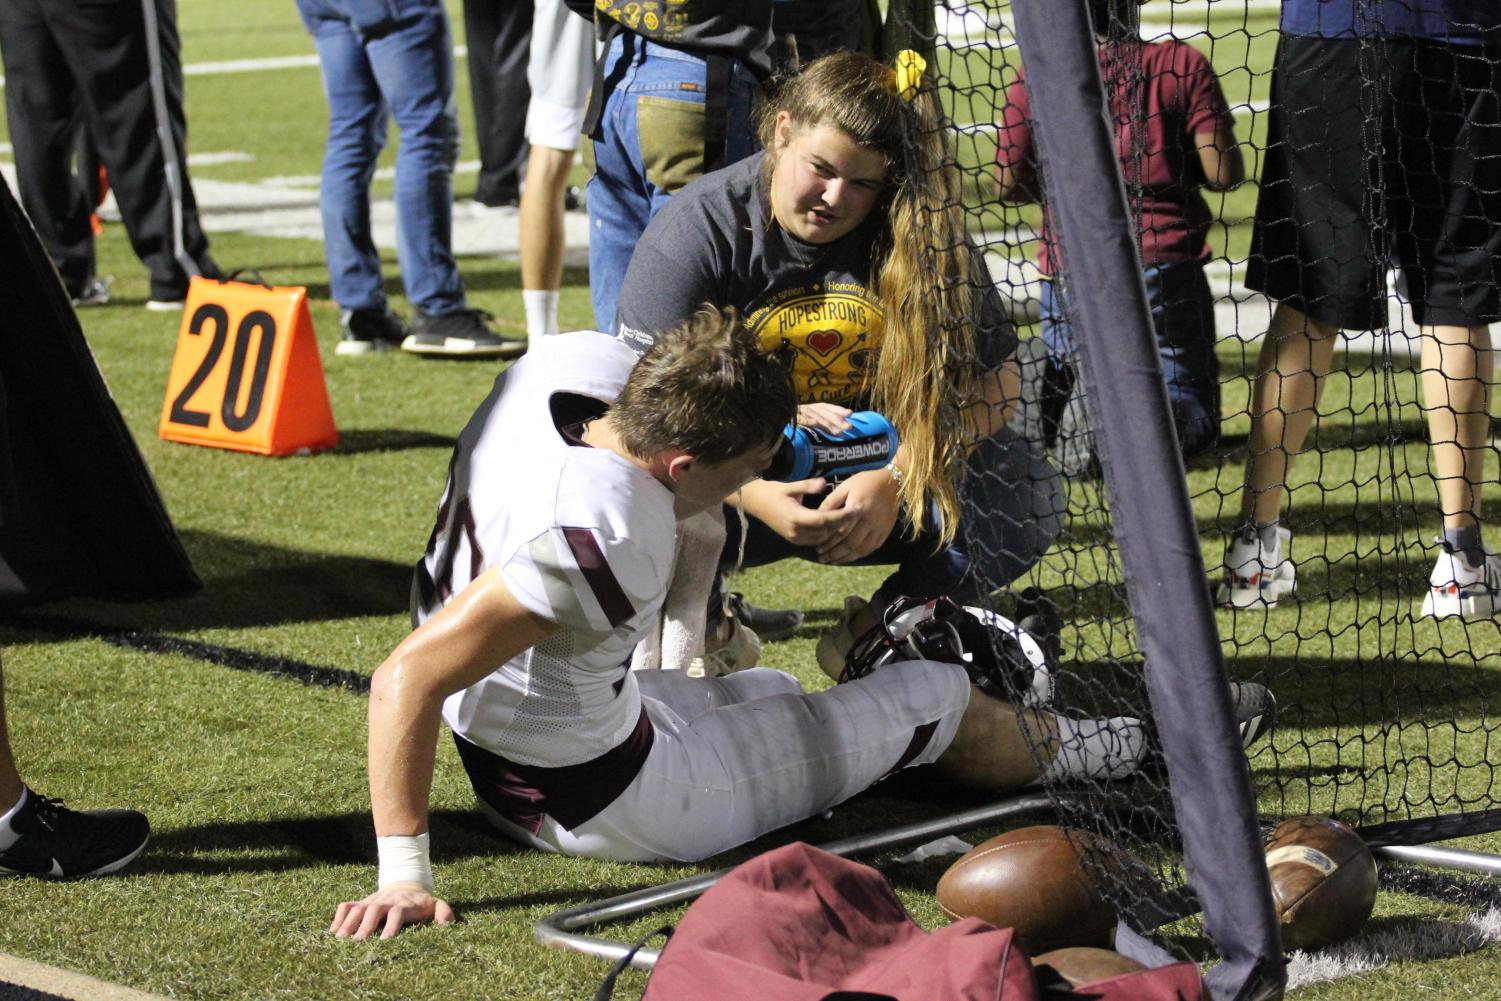 Senior advanced athletic trainer Reagan Ferem tends to an injured varsity football player at the coveted Bastrop vs Cedar Creek Gold Out game on October 4 at Memorial stadium.